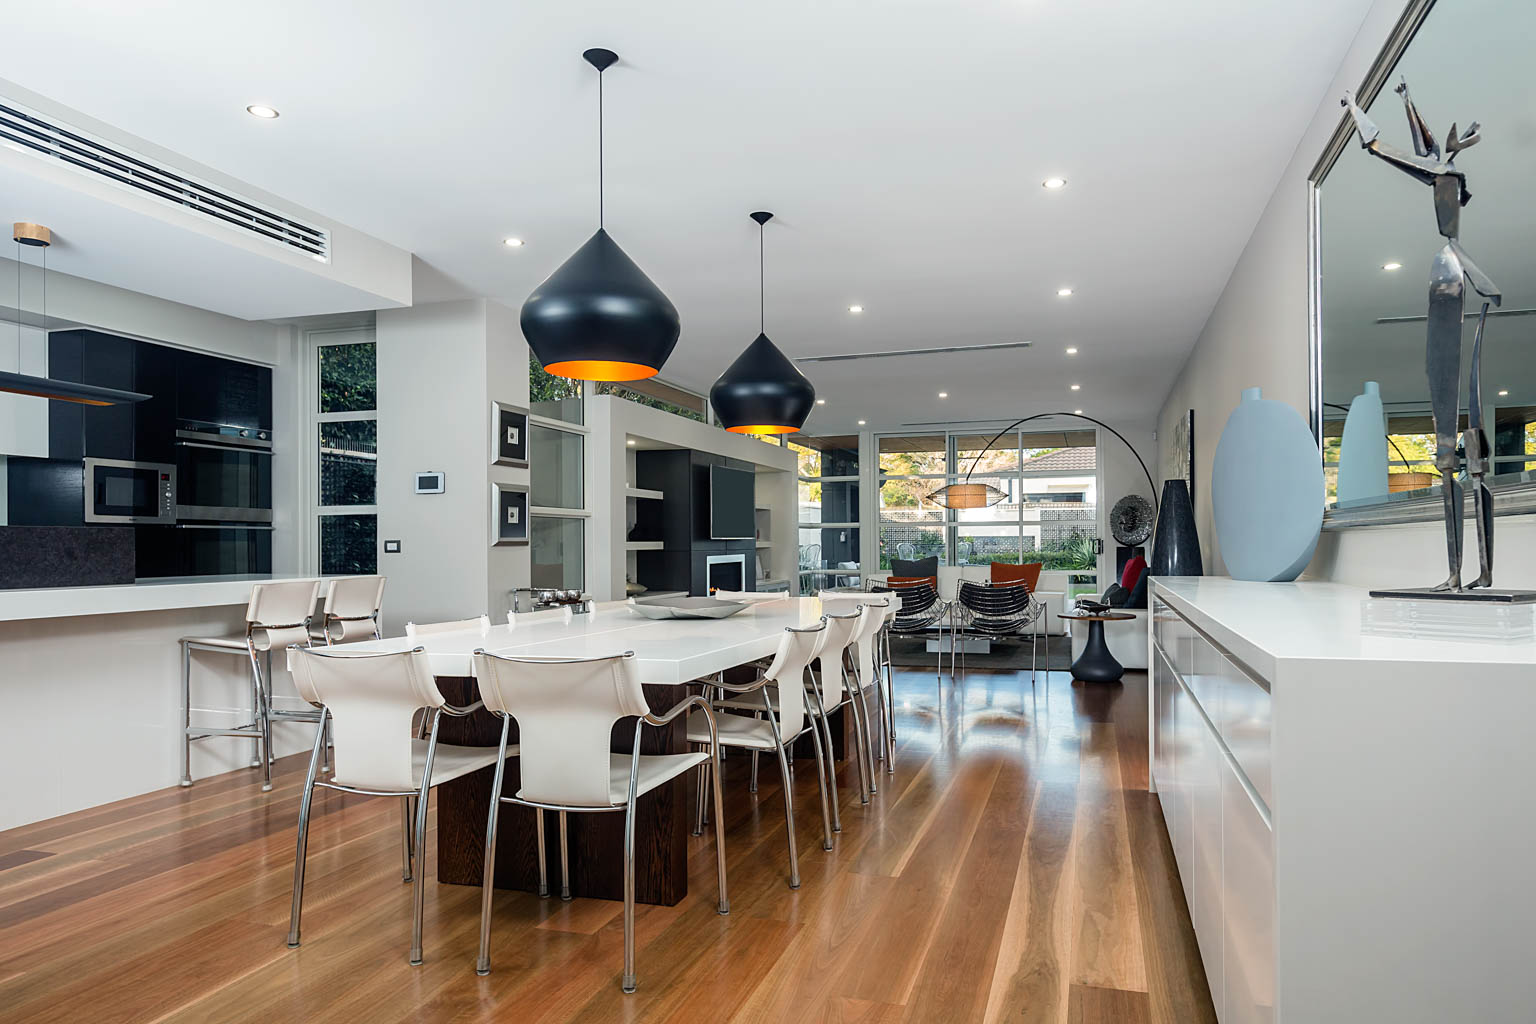 modern home interior photography of kitchen dining room and lounge